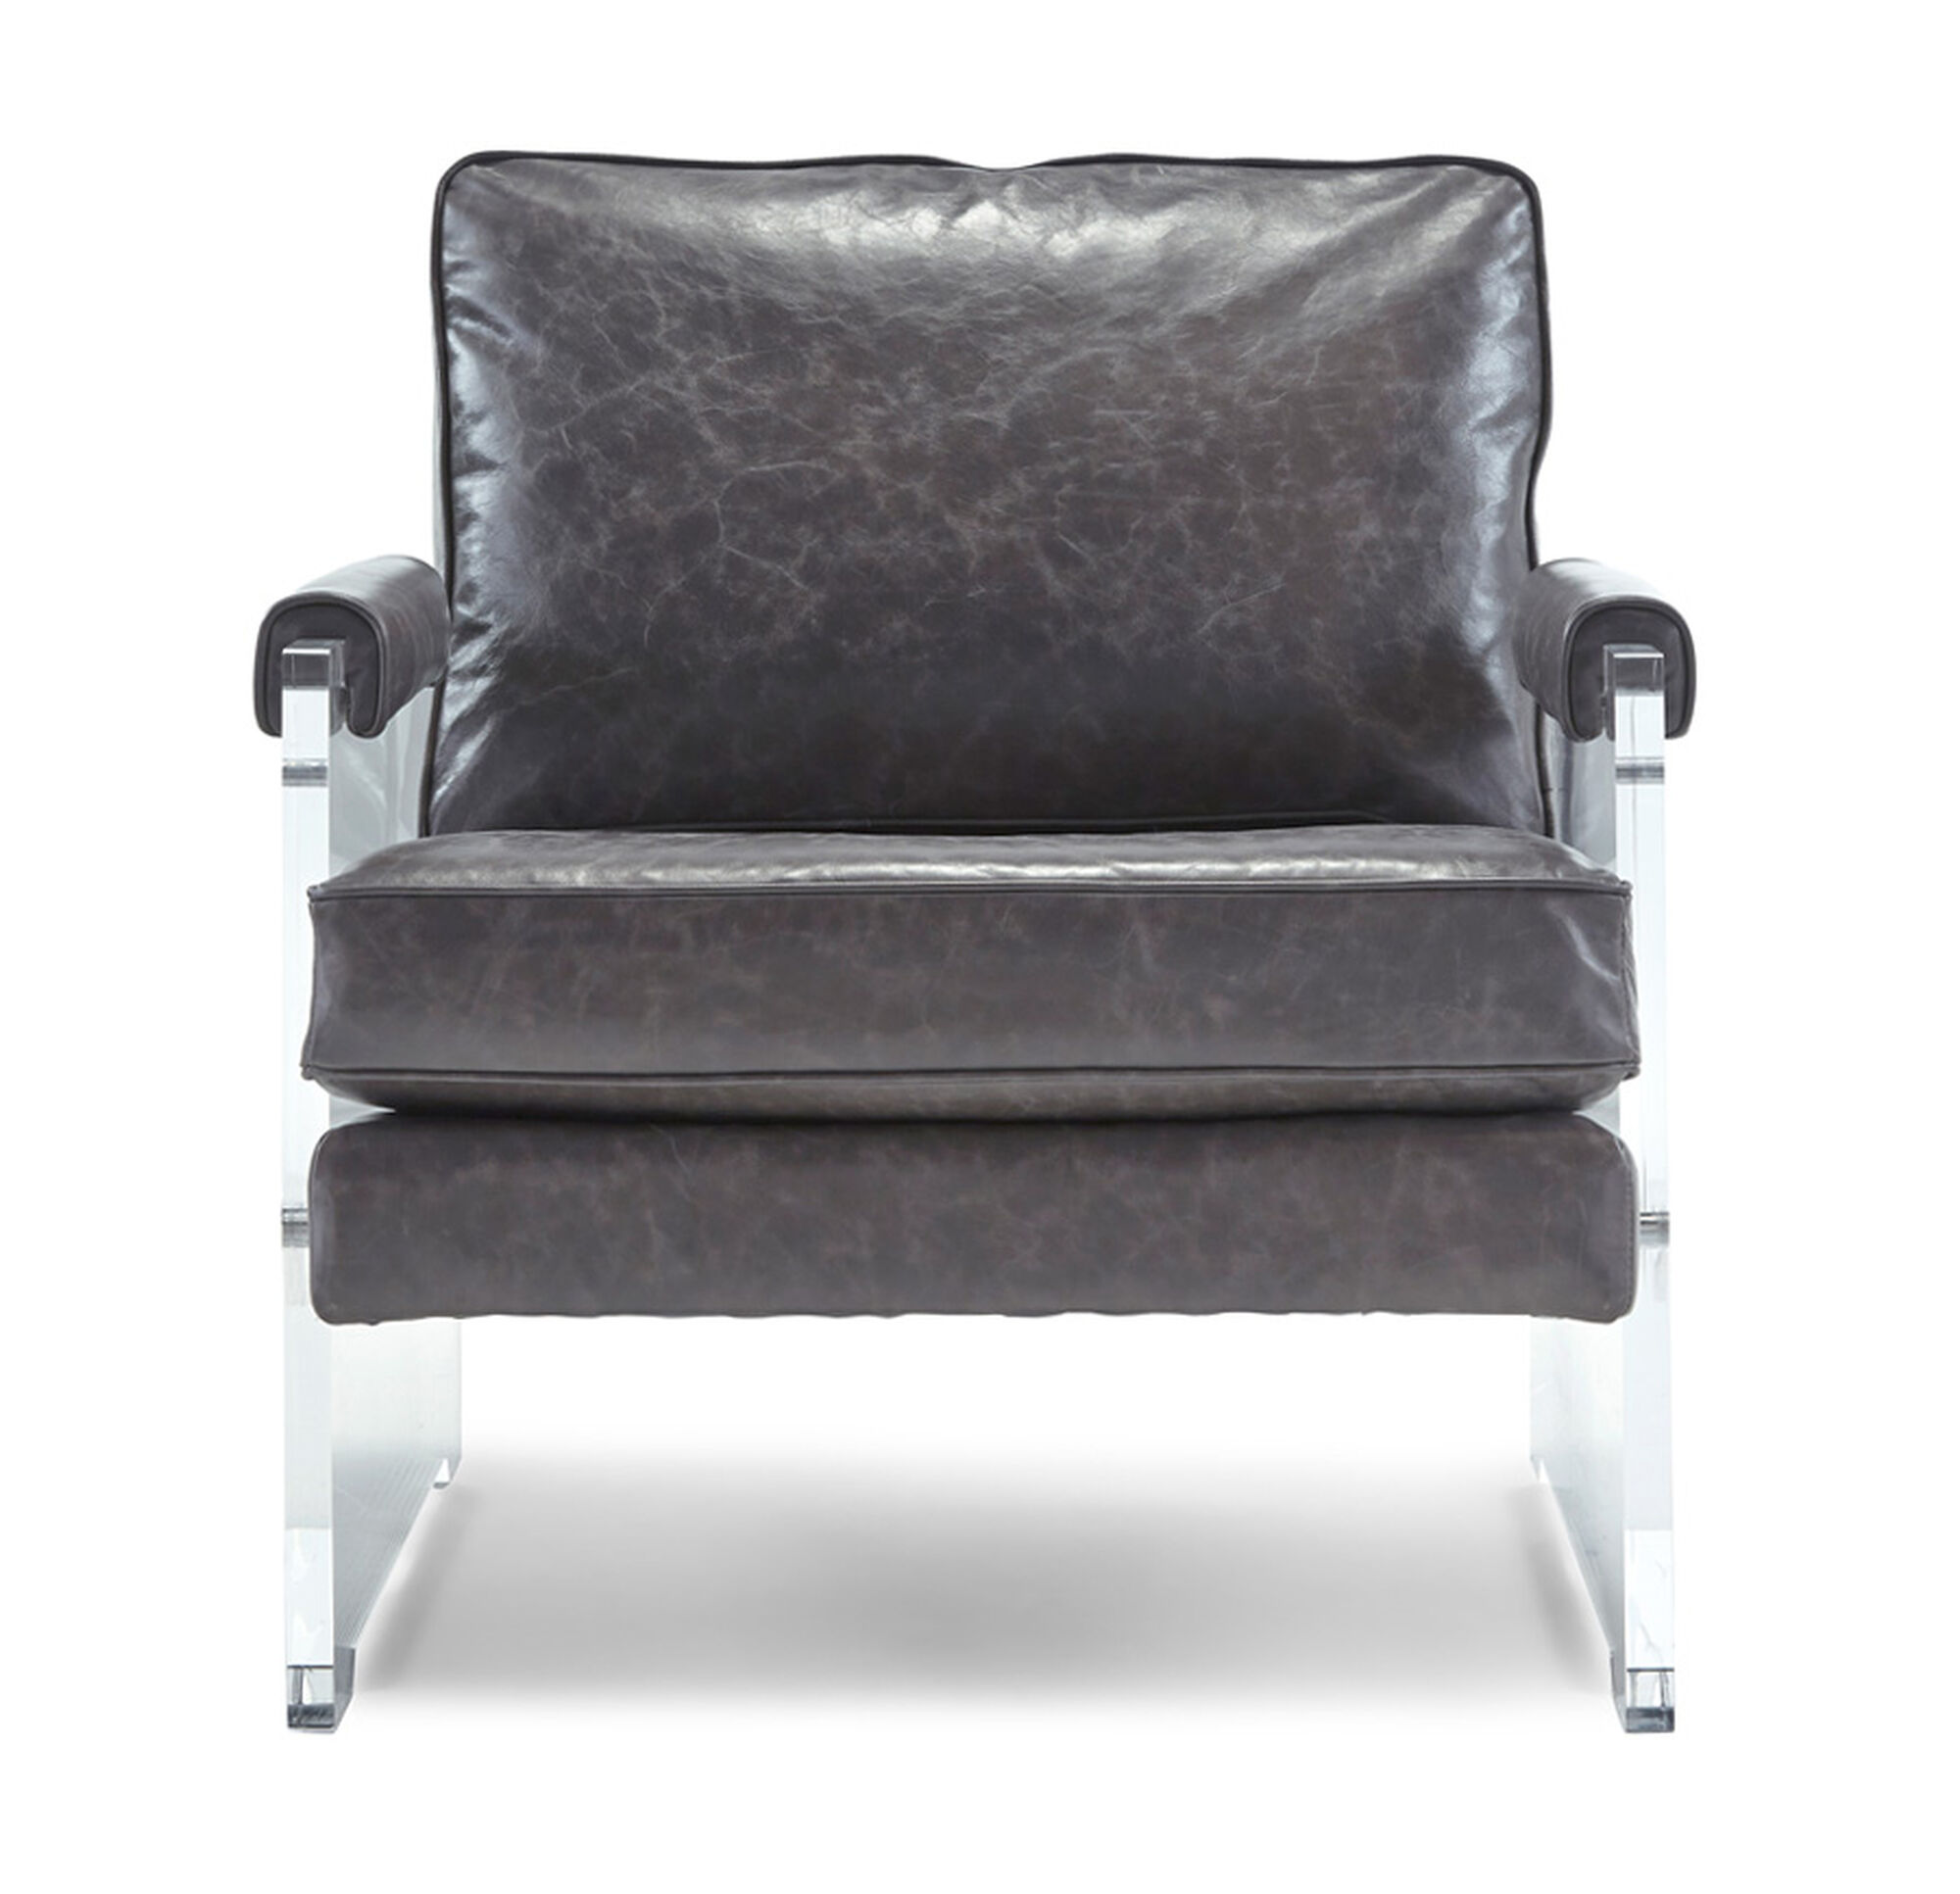 KAZAN LEATHER CHAIR